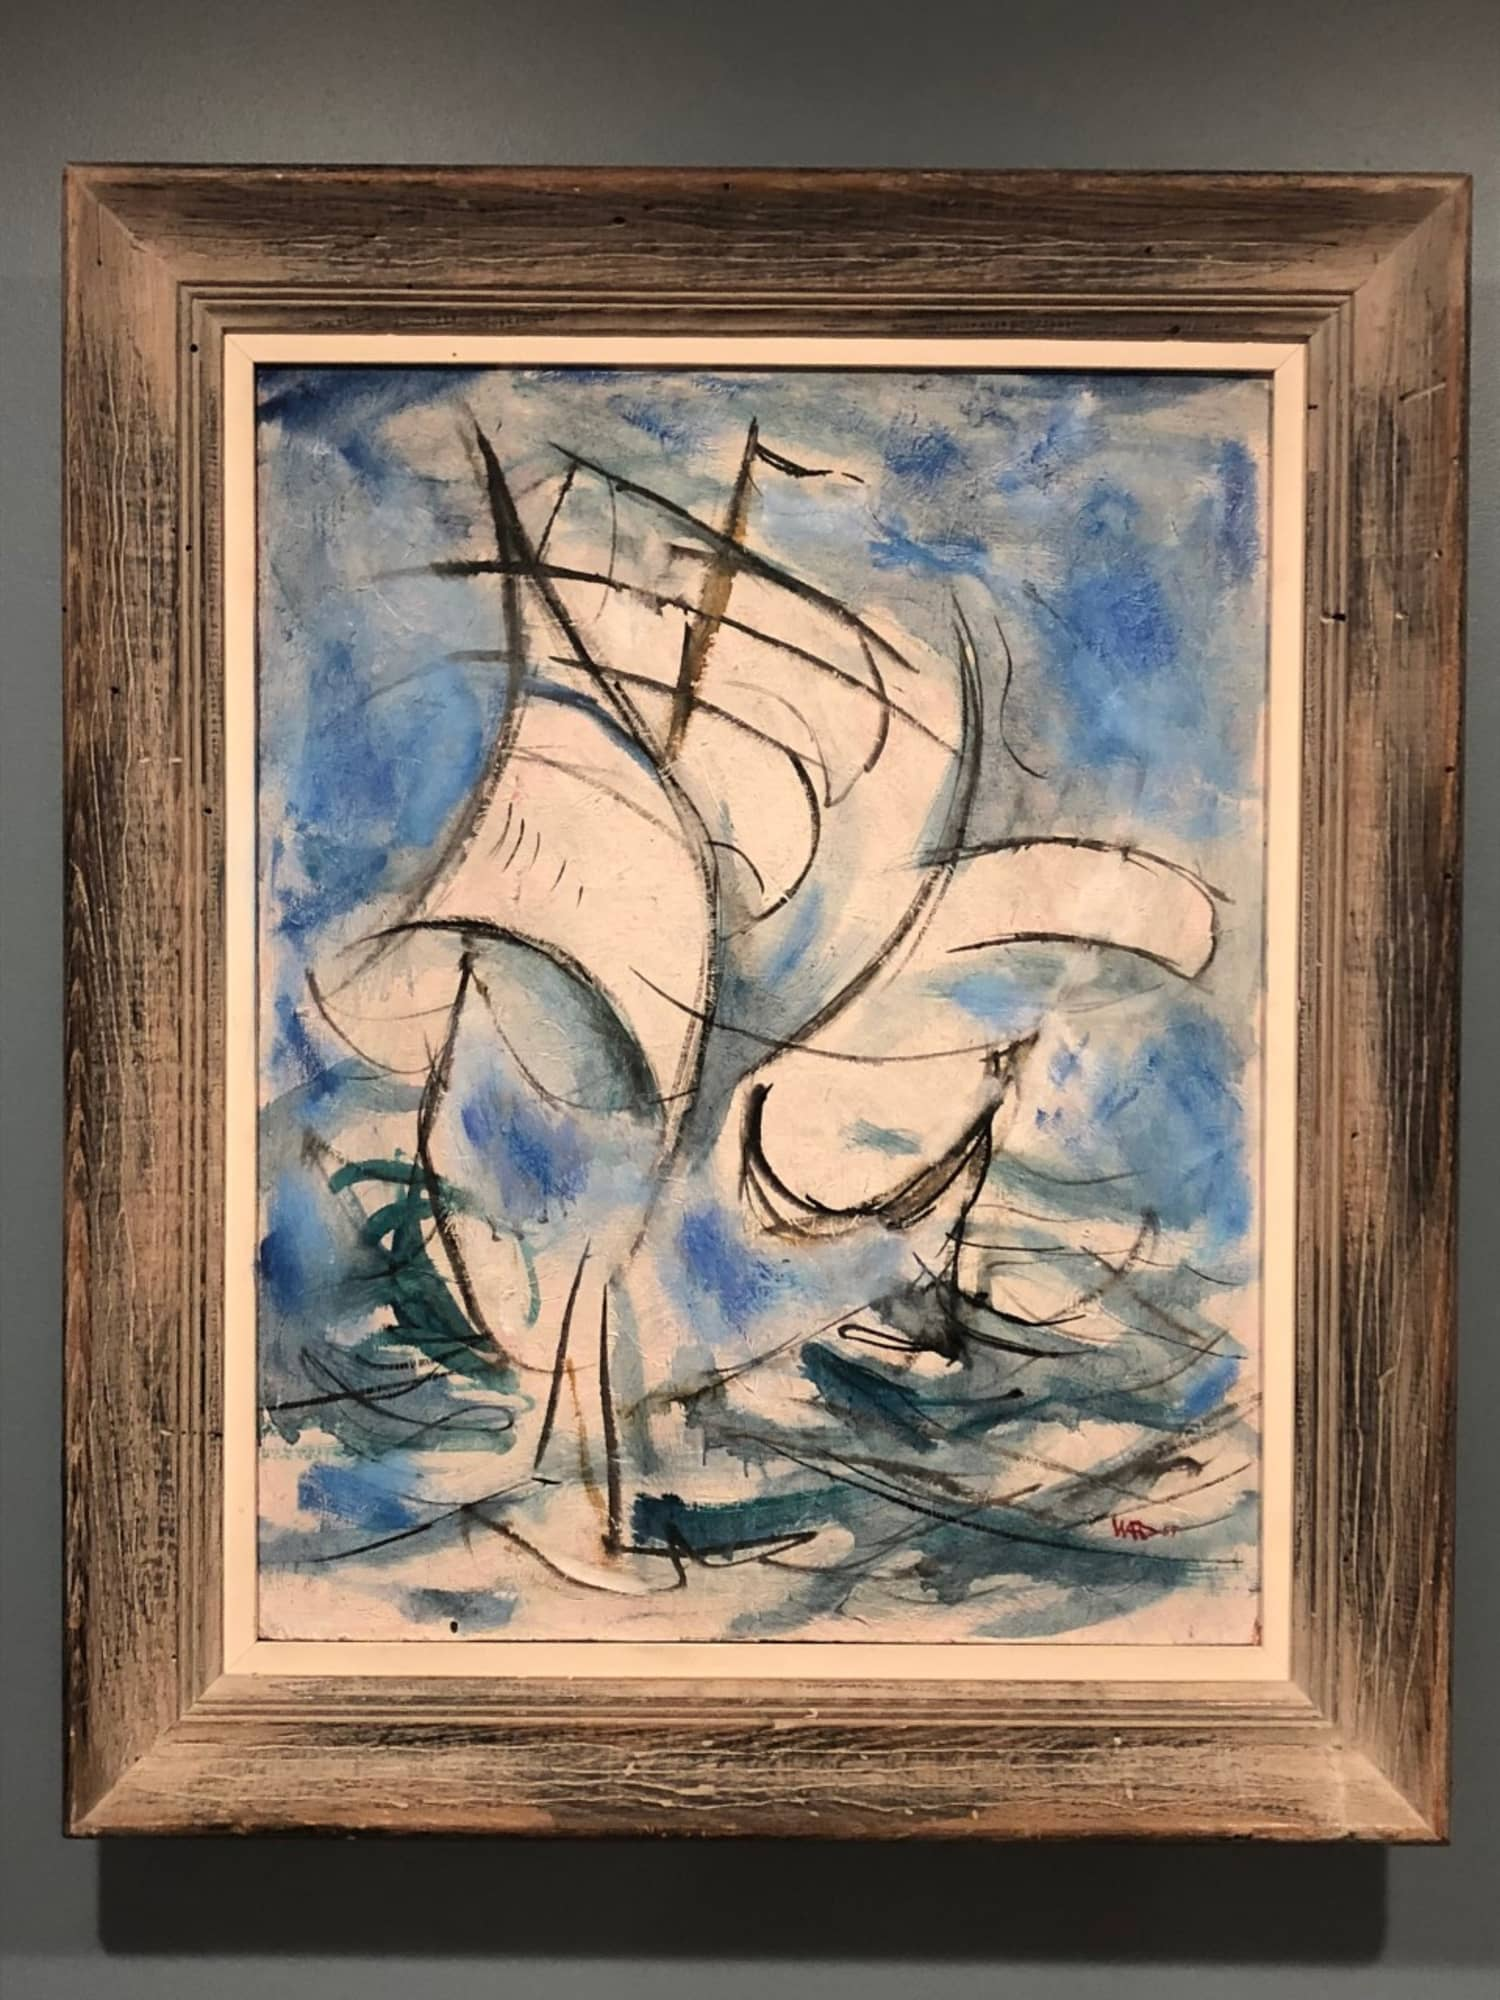 Get Nautical With This Art Piece on Bazaar